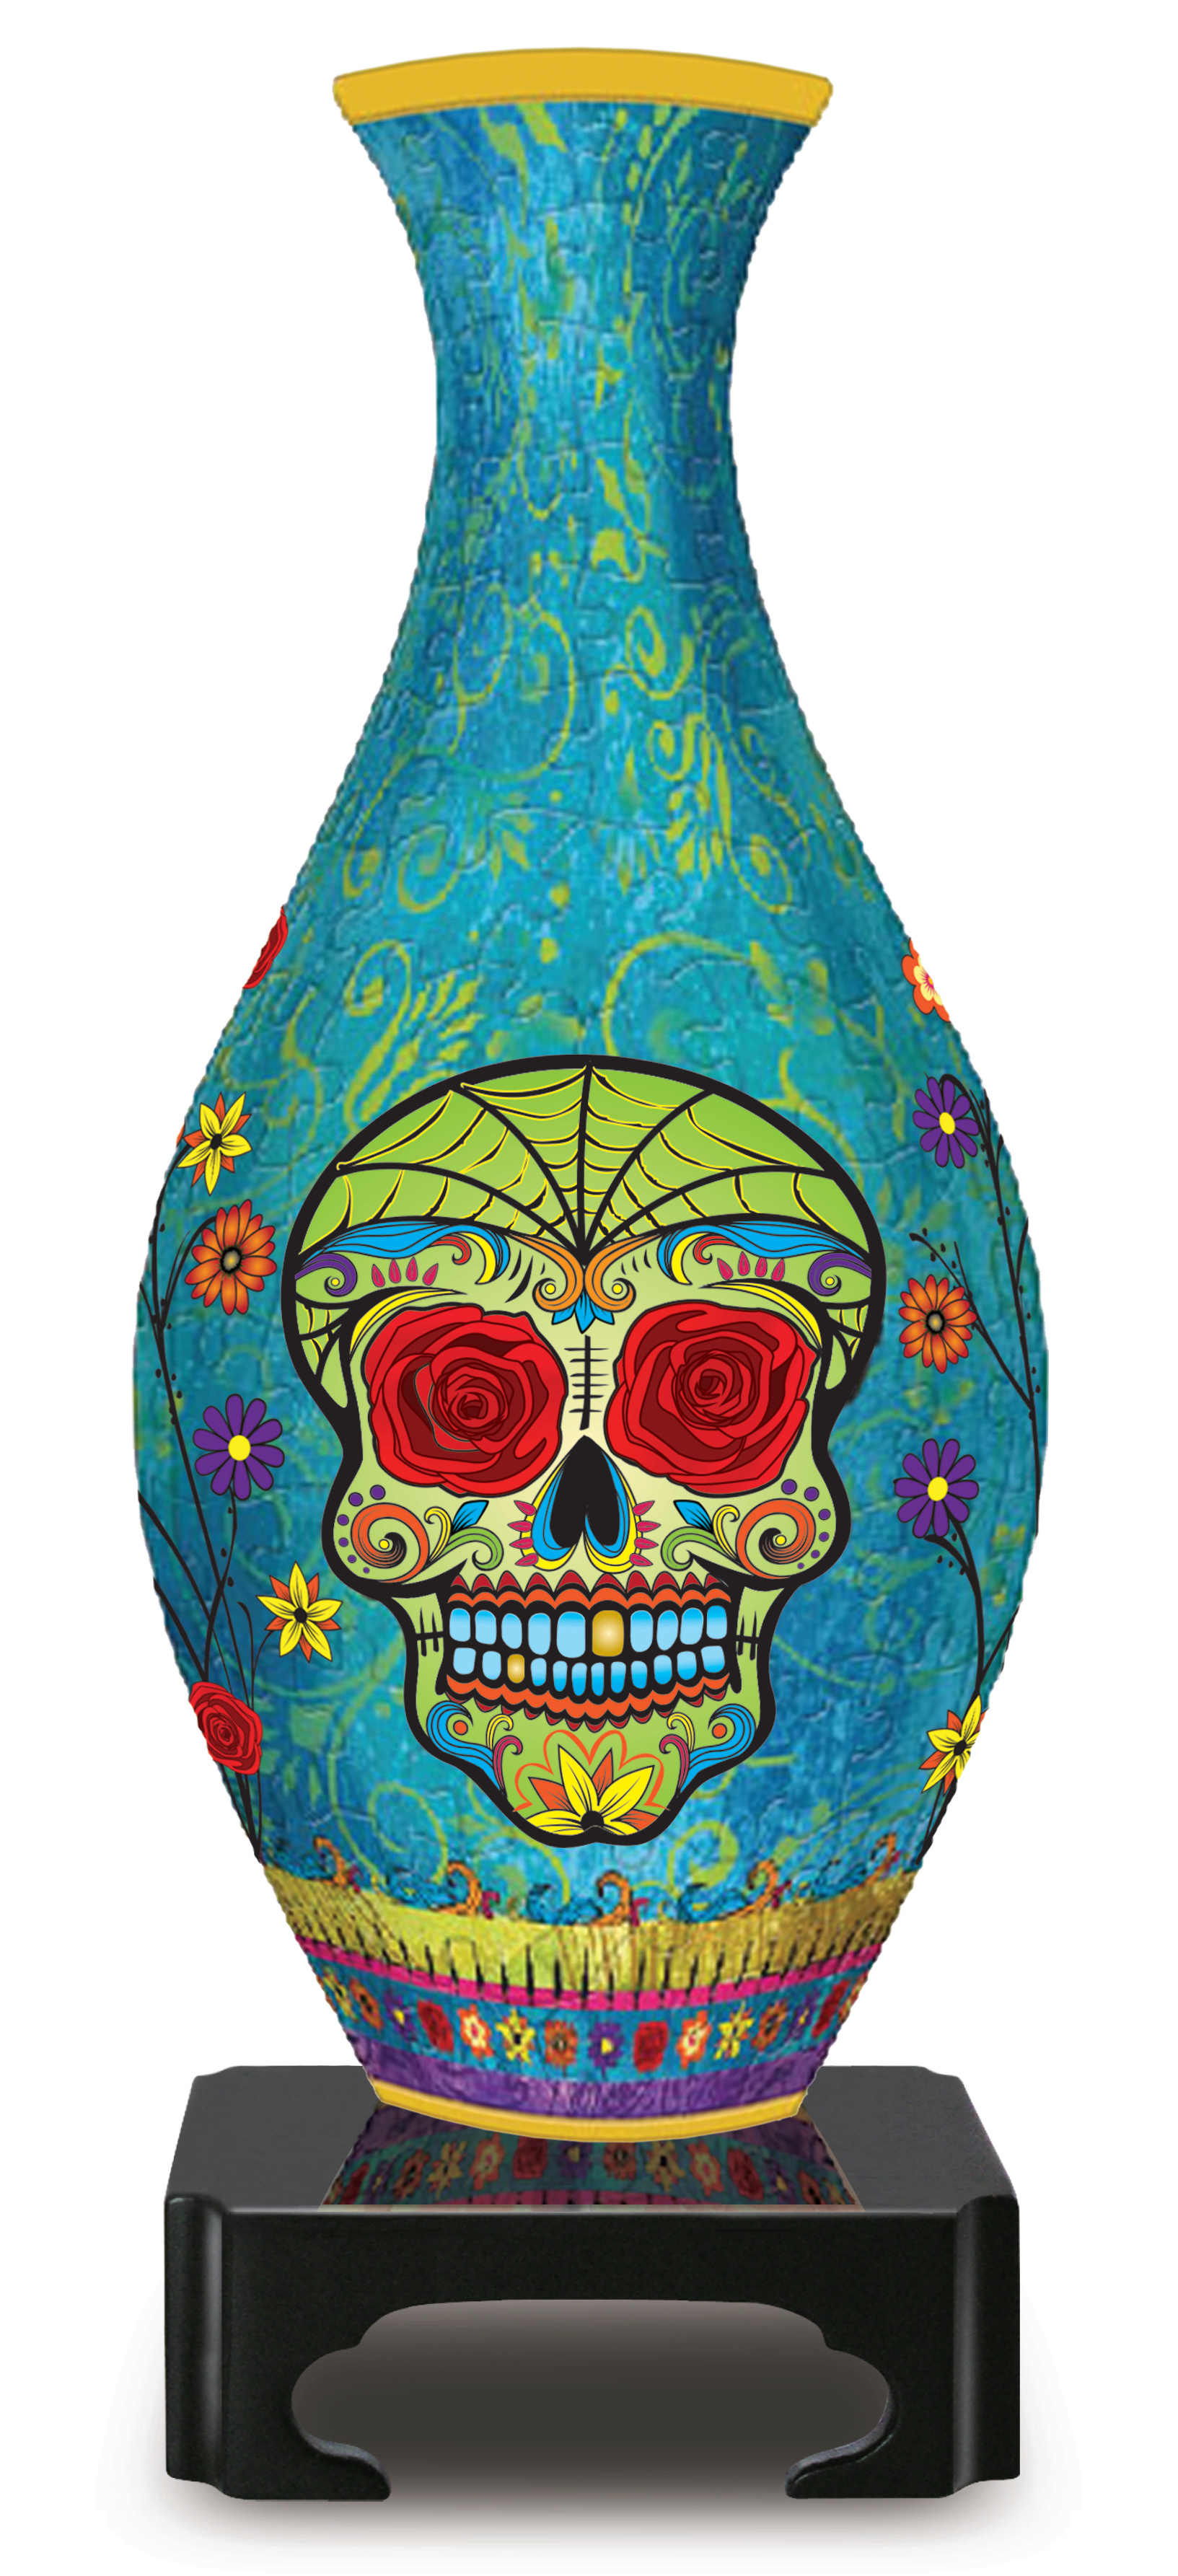 31006_Lifestyle_Vase_DayOfTheDead